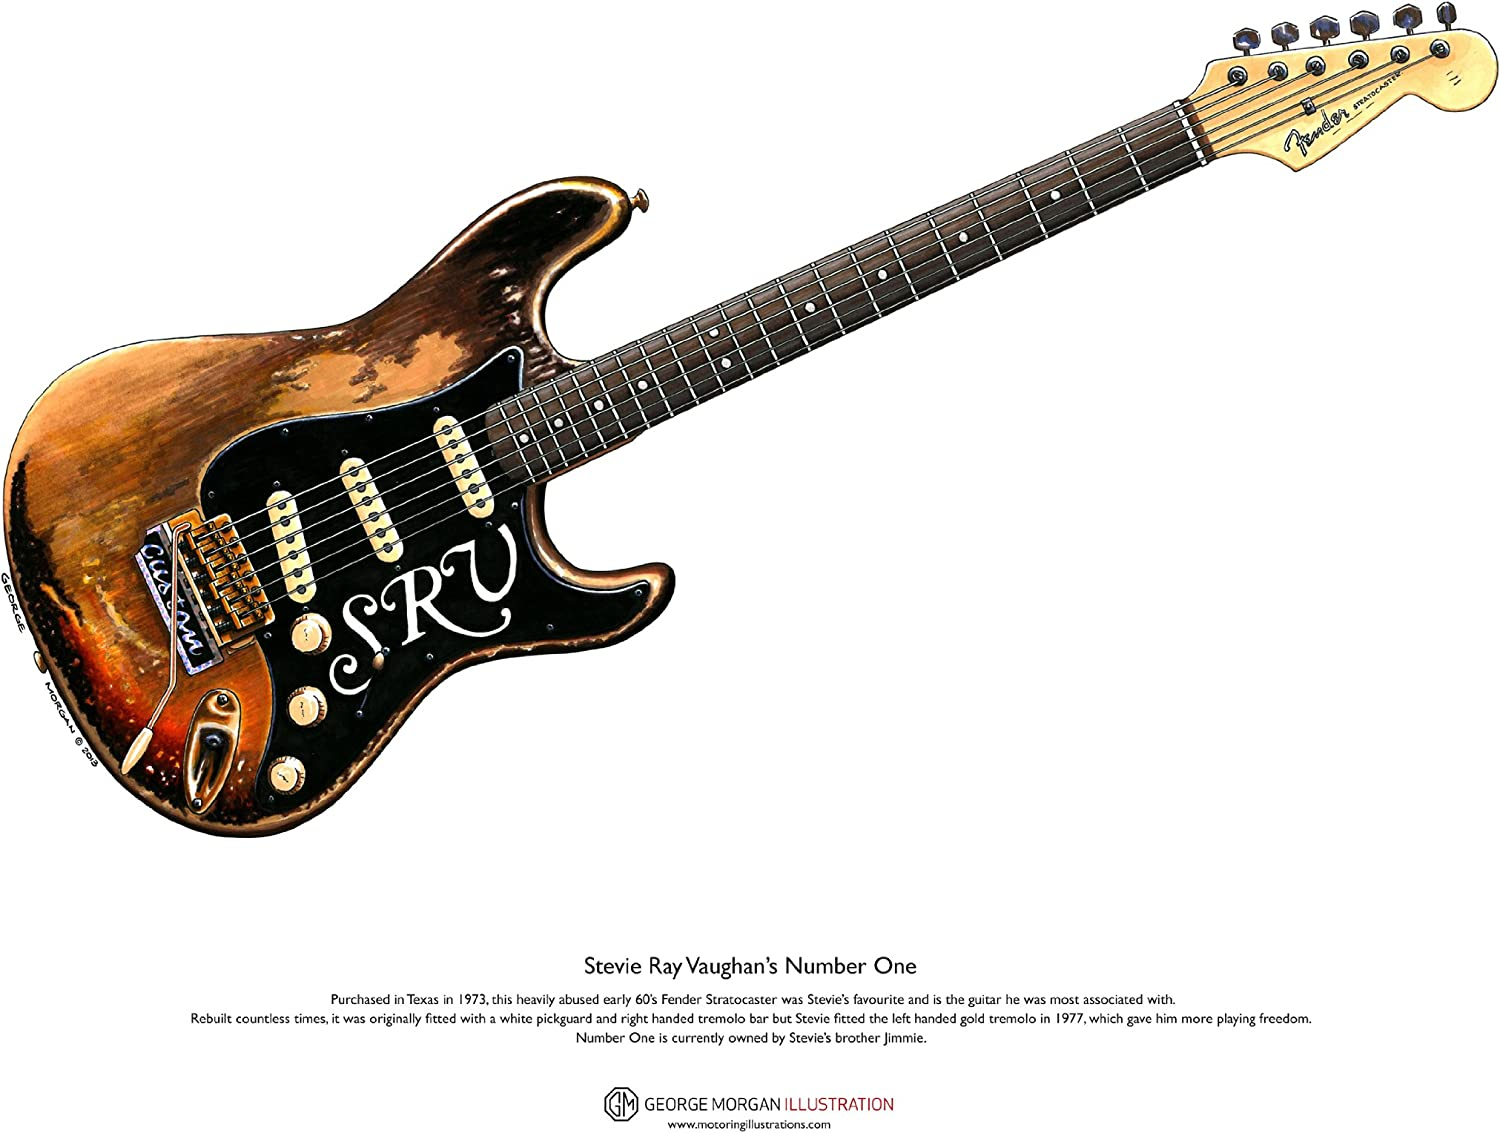 George Morgan Illustration Art Cartel de Stratocaster Número Uno ...